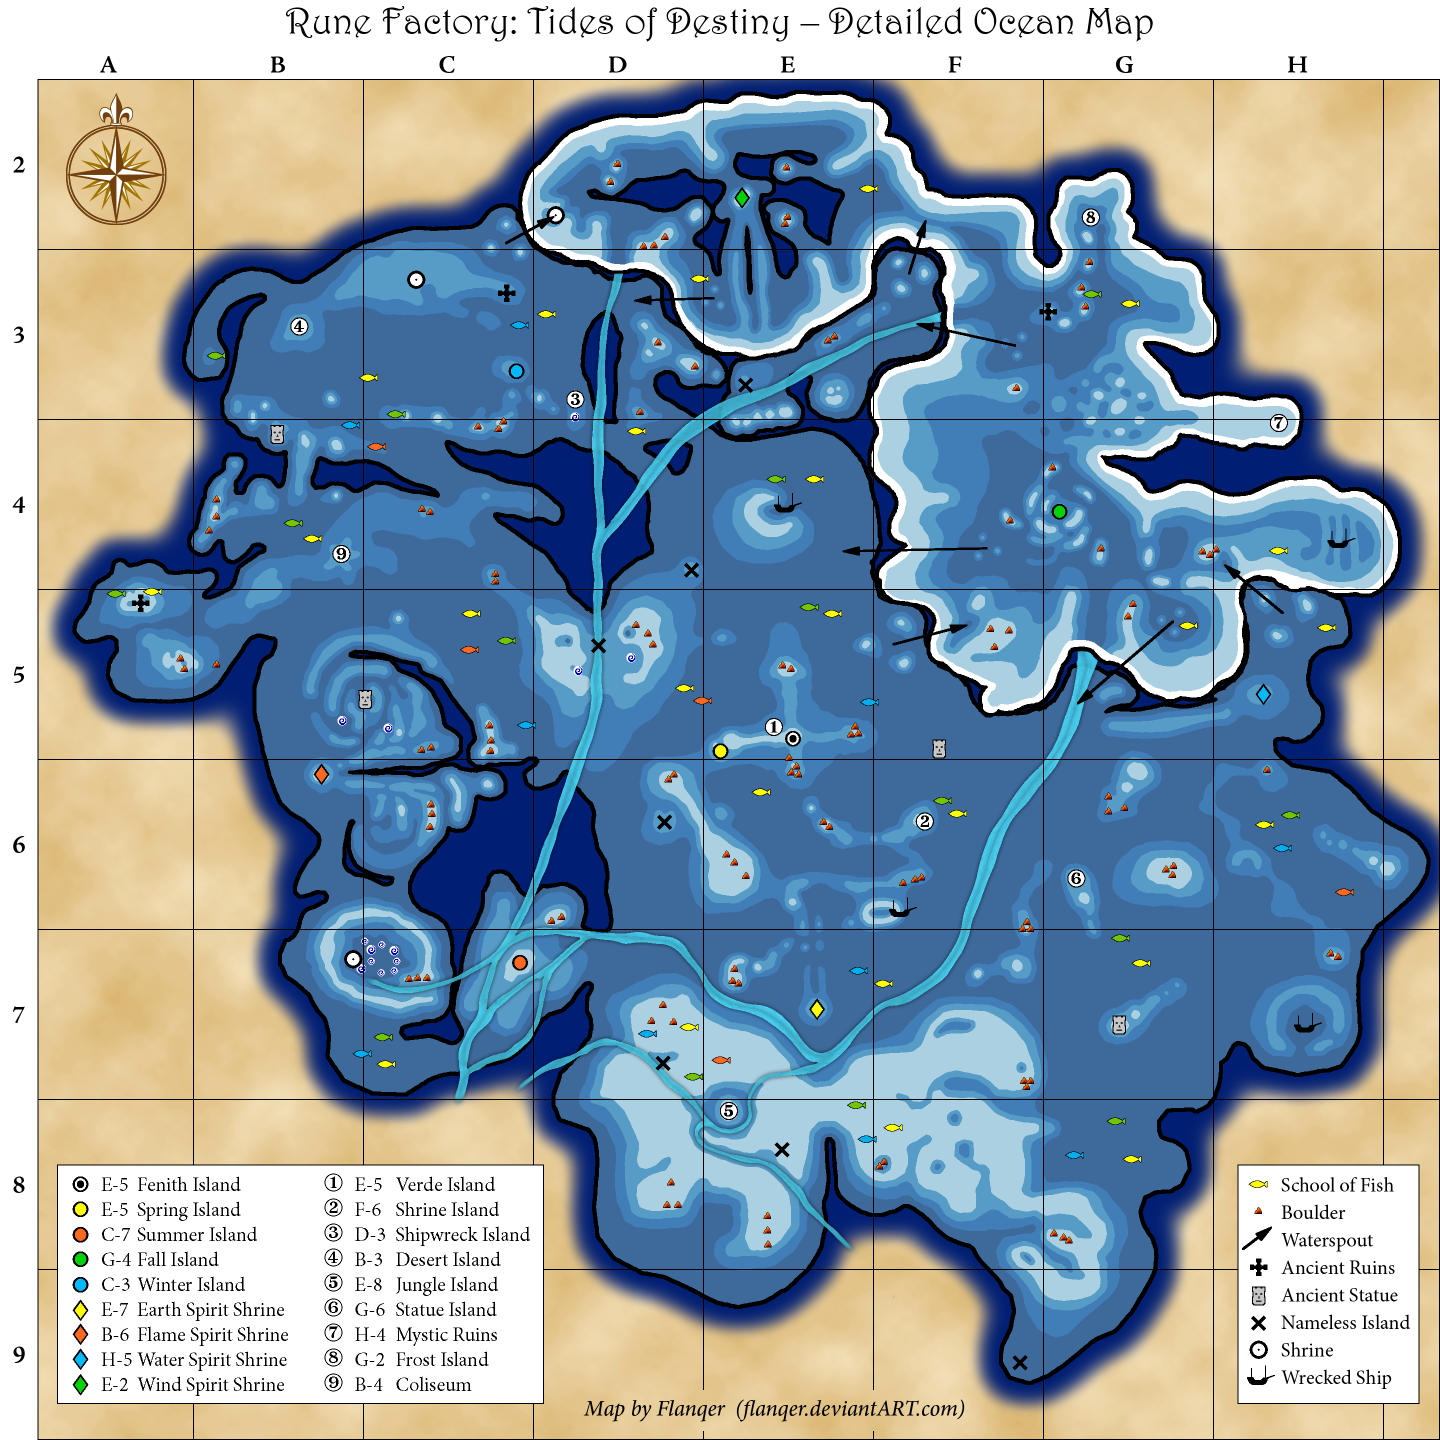 Factory tides of destiny map by flanqer on deviantart rune factory tides of destiny map by flanqer nvjuhfo Images